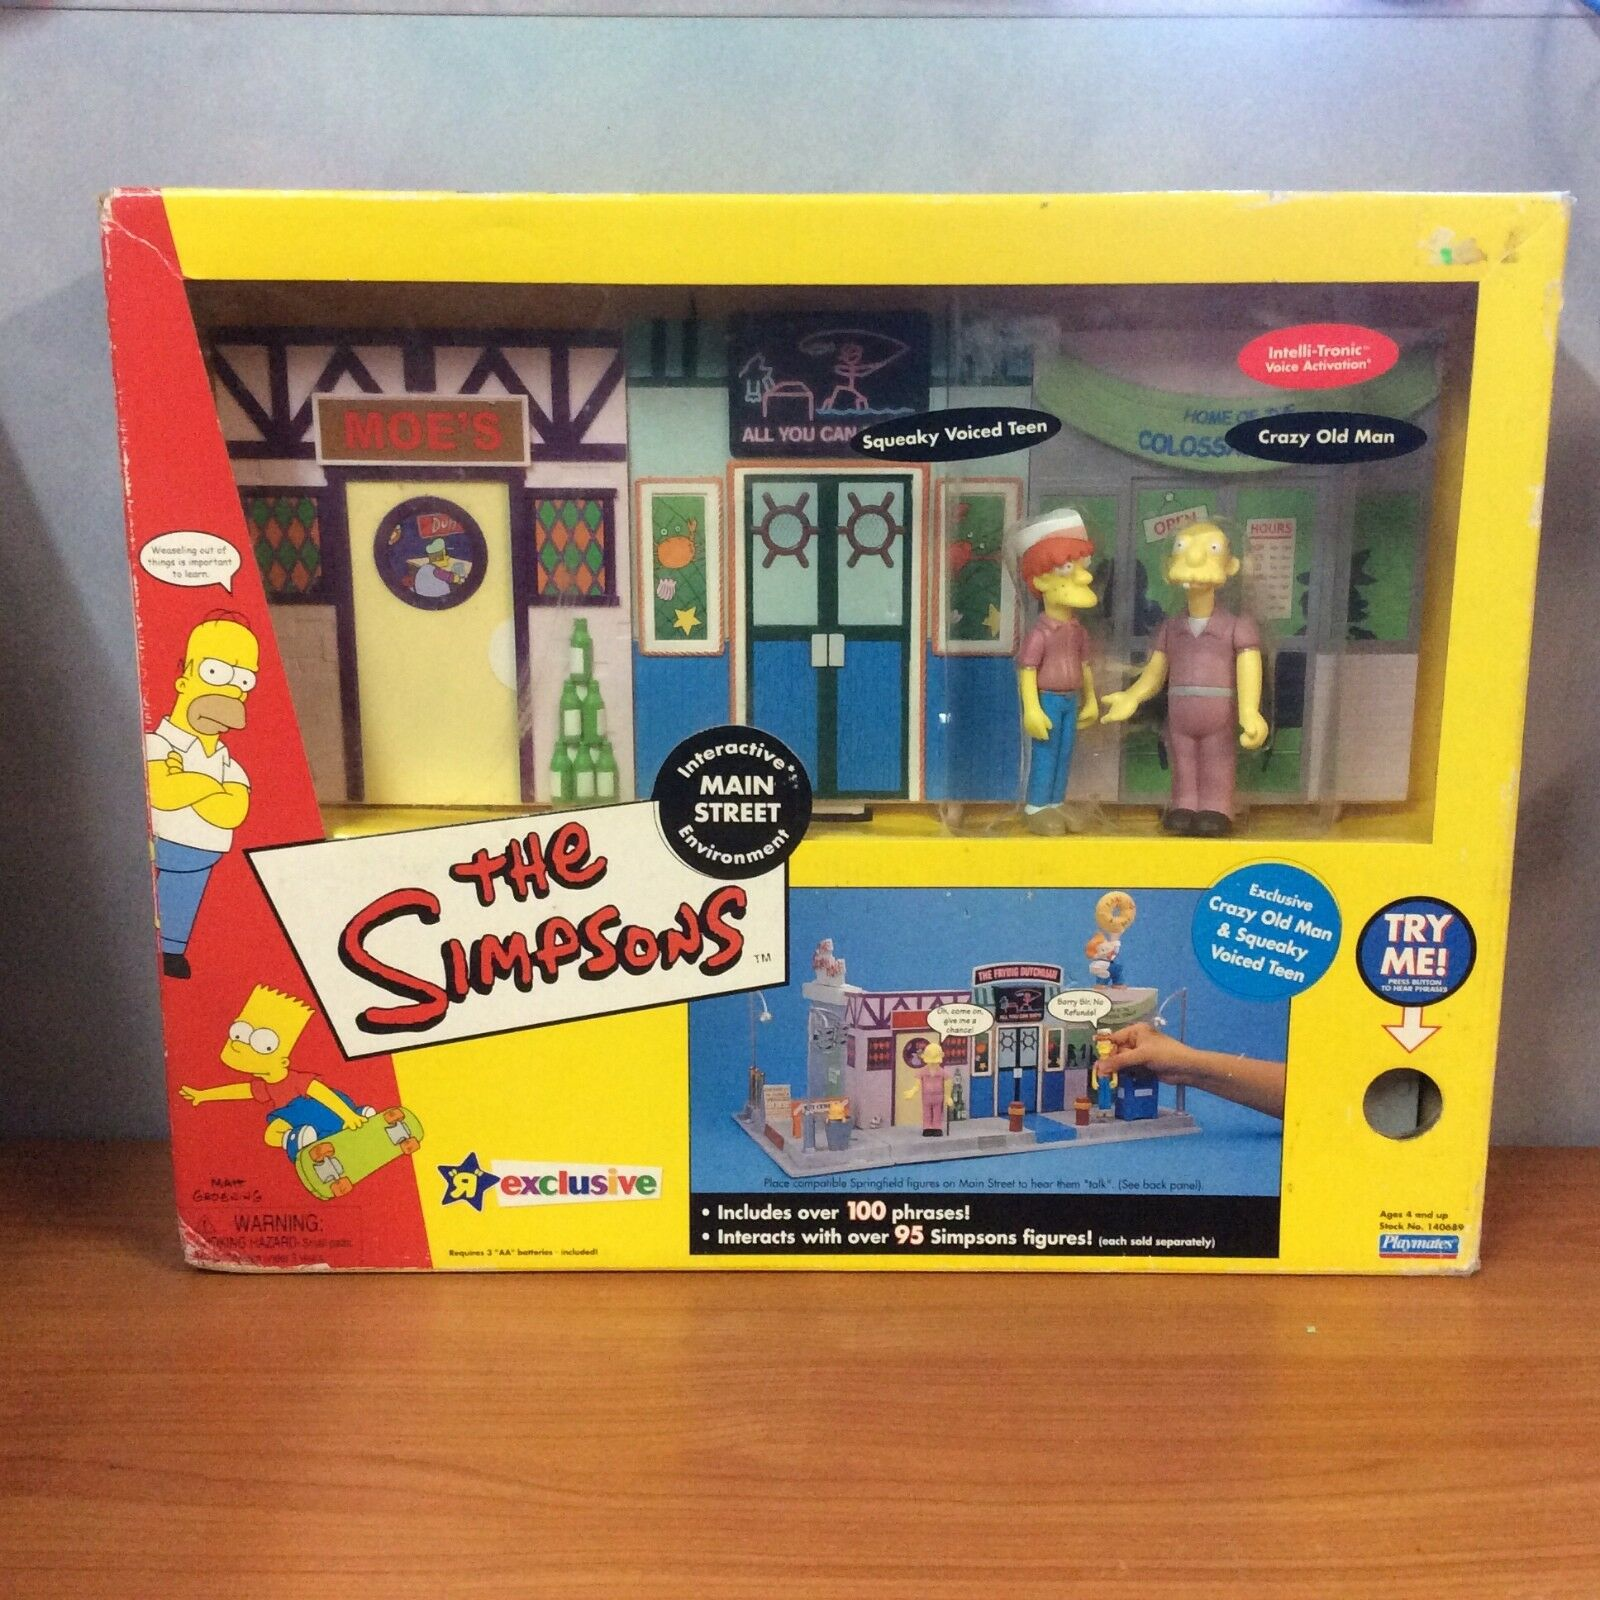 2002 The Simpsons Interactive Main Street Environment - New